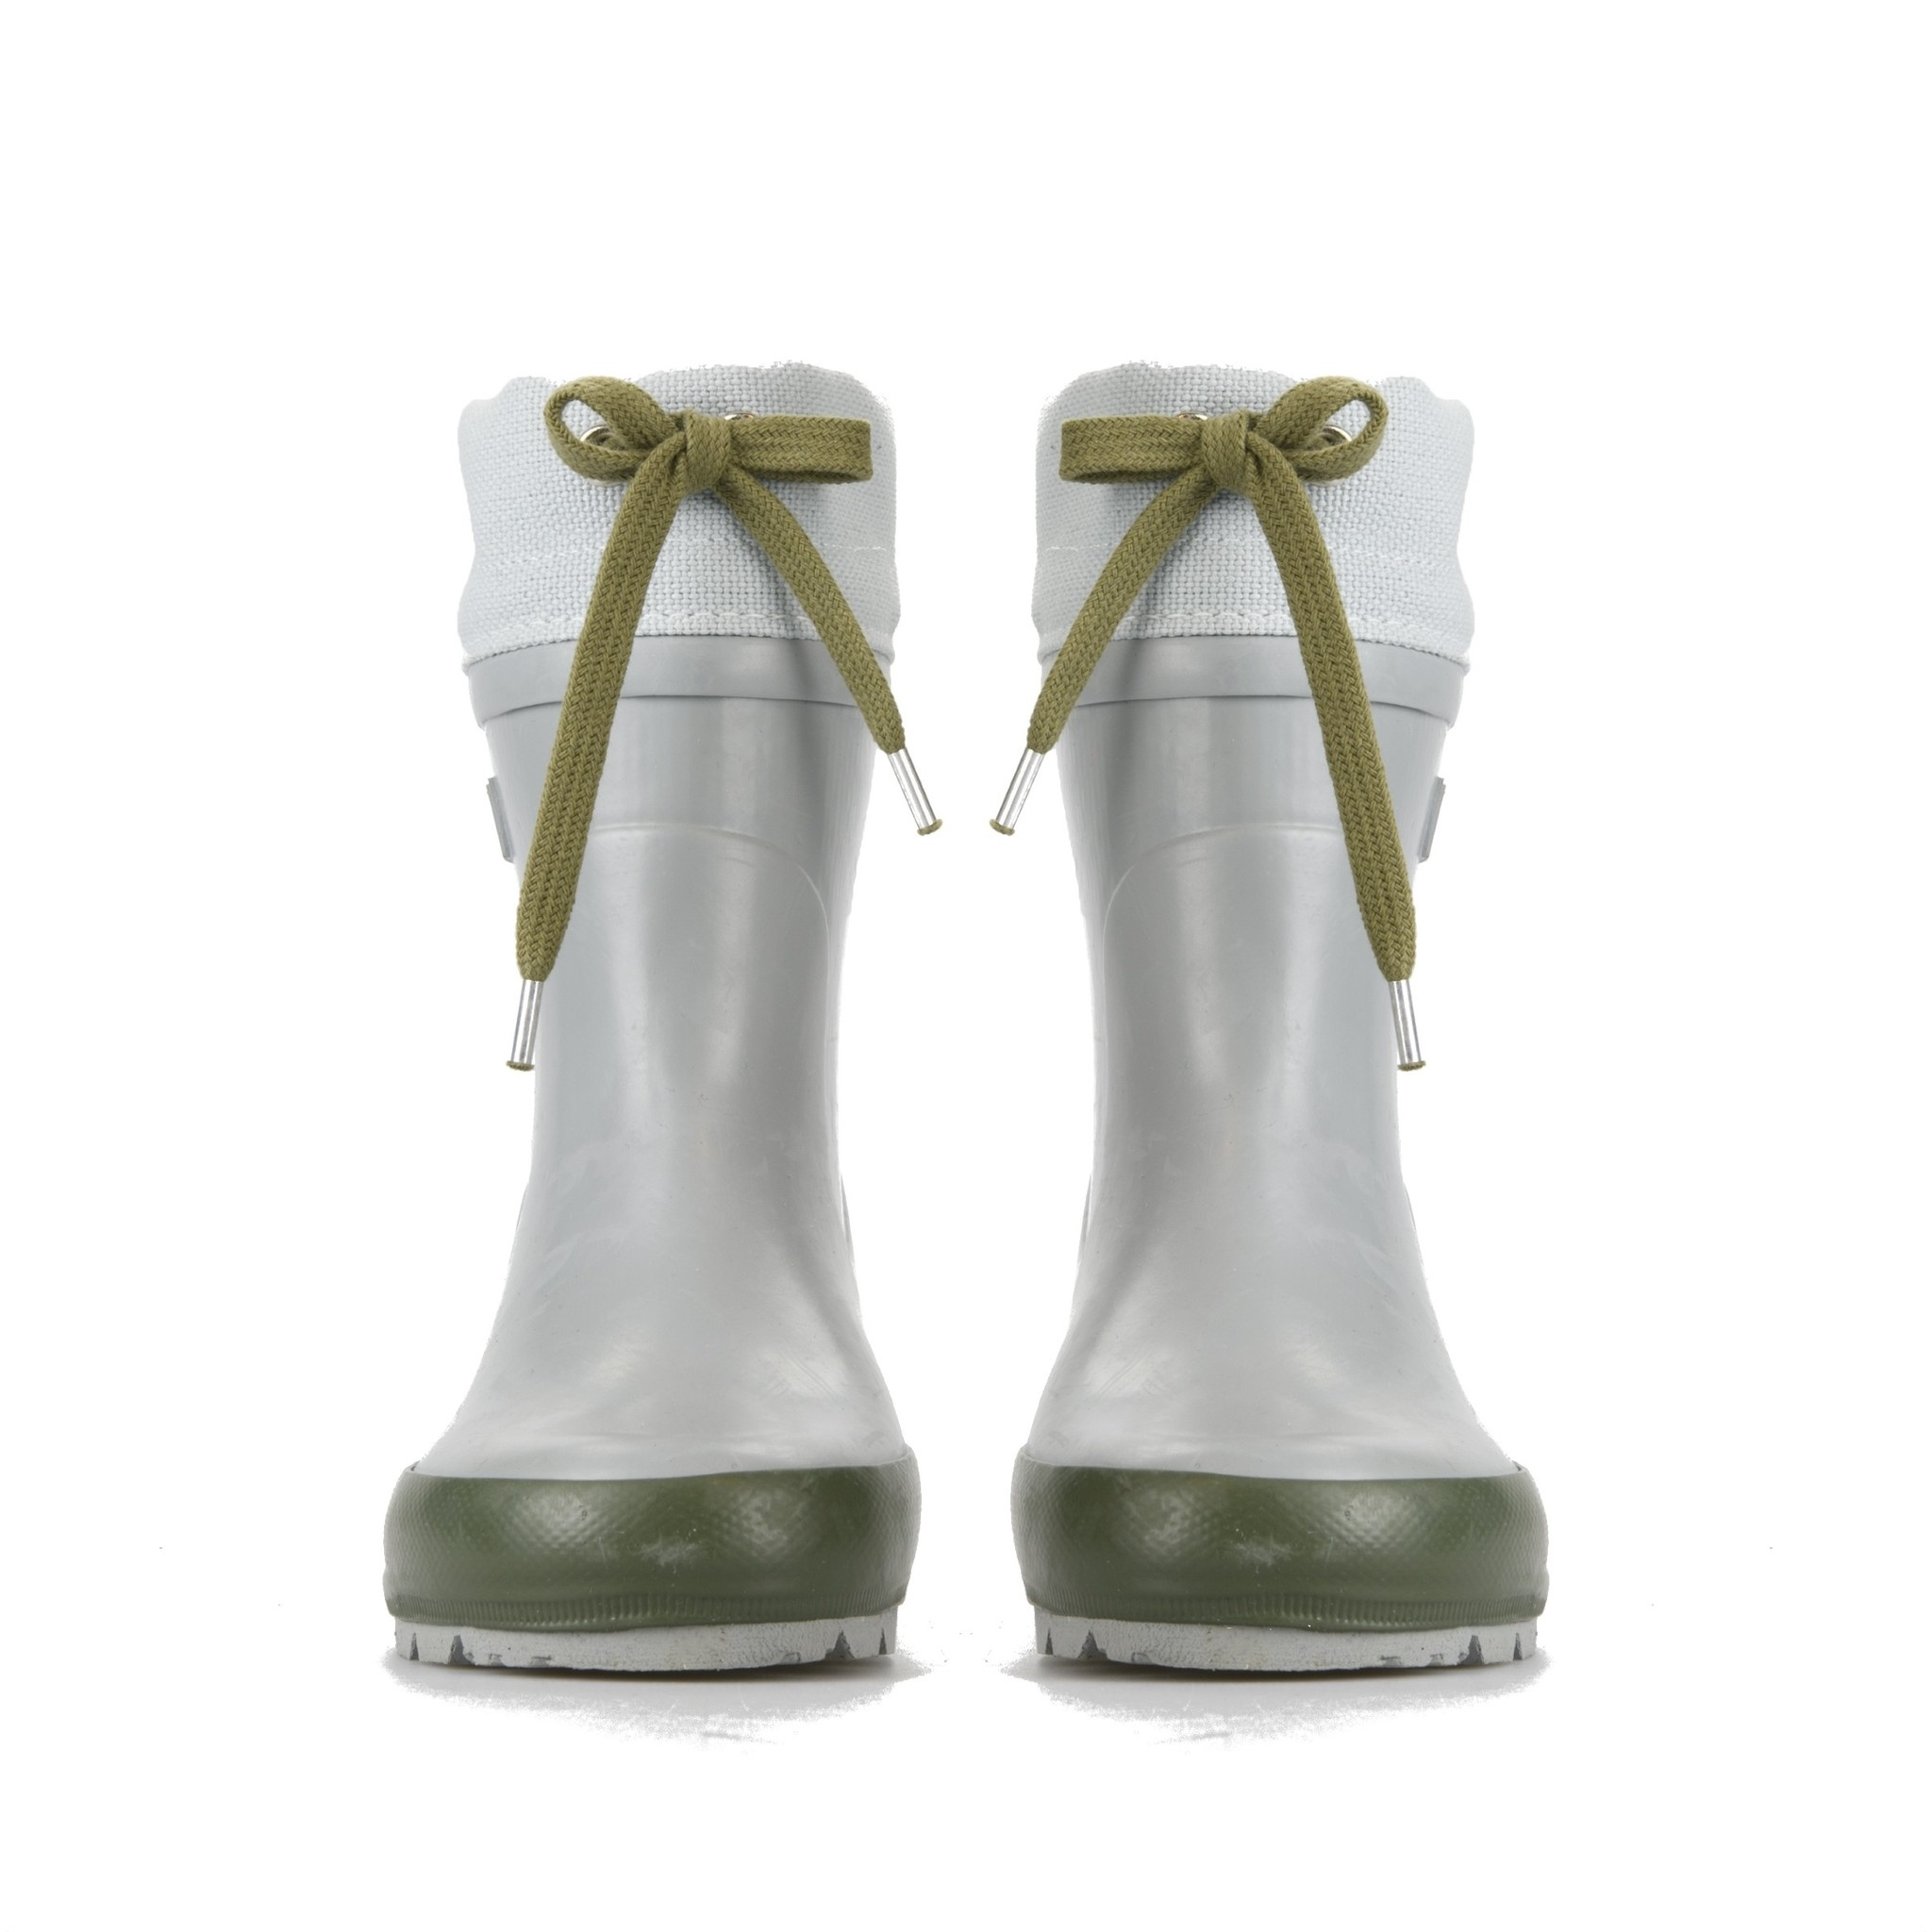 KIDDO WINTER BOOTS - Grey / Military-2